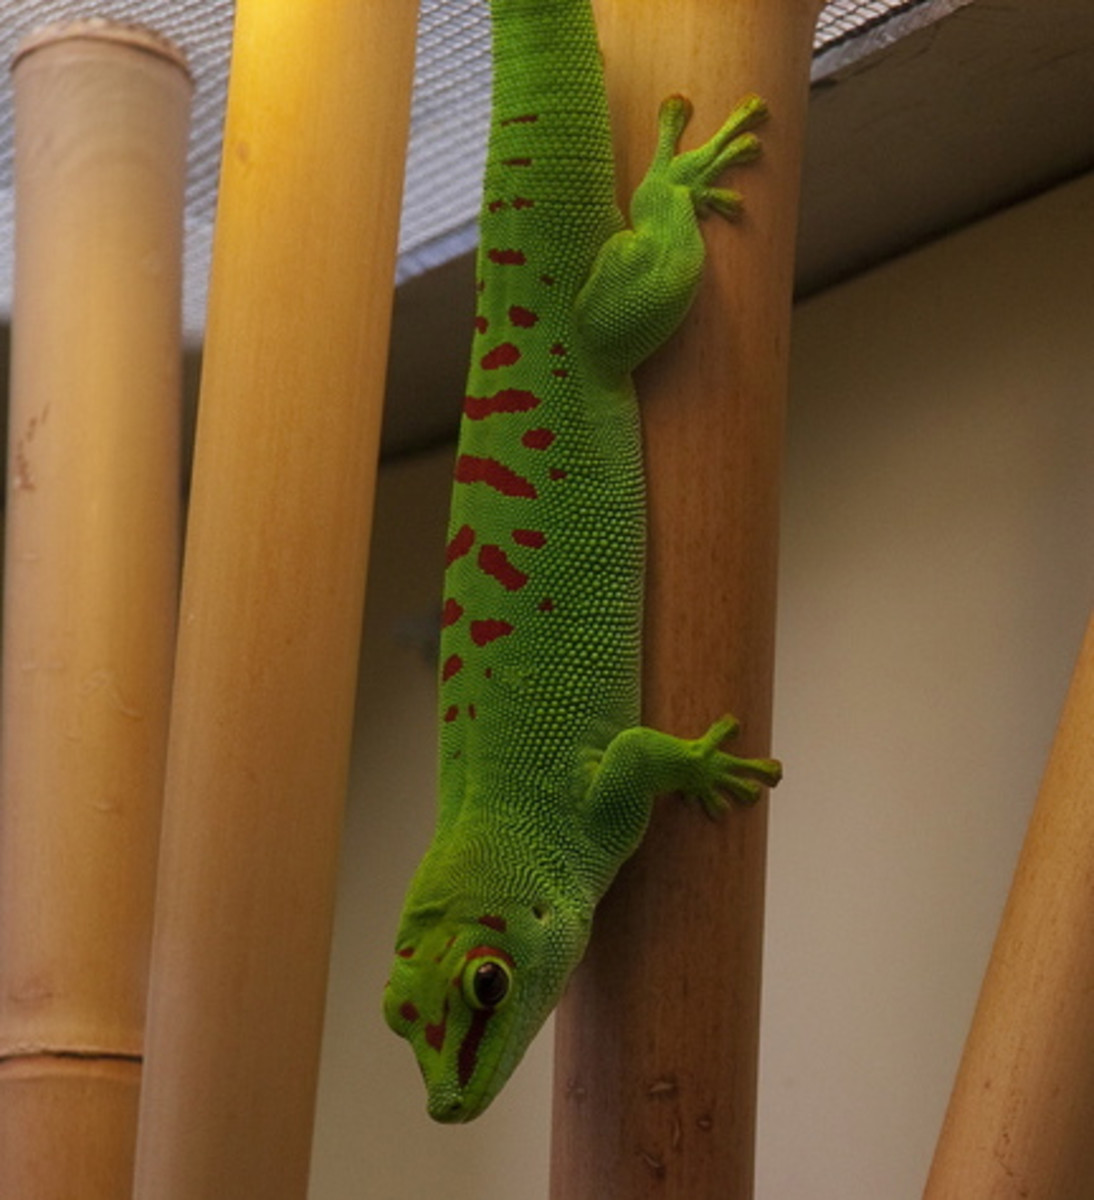 The grandis subspecies of the giant Madagascar day gecko is the most colourful, and the most popular.